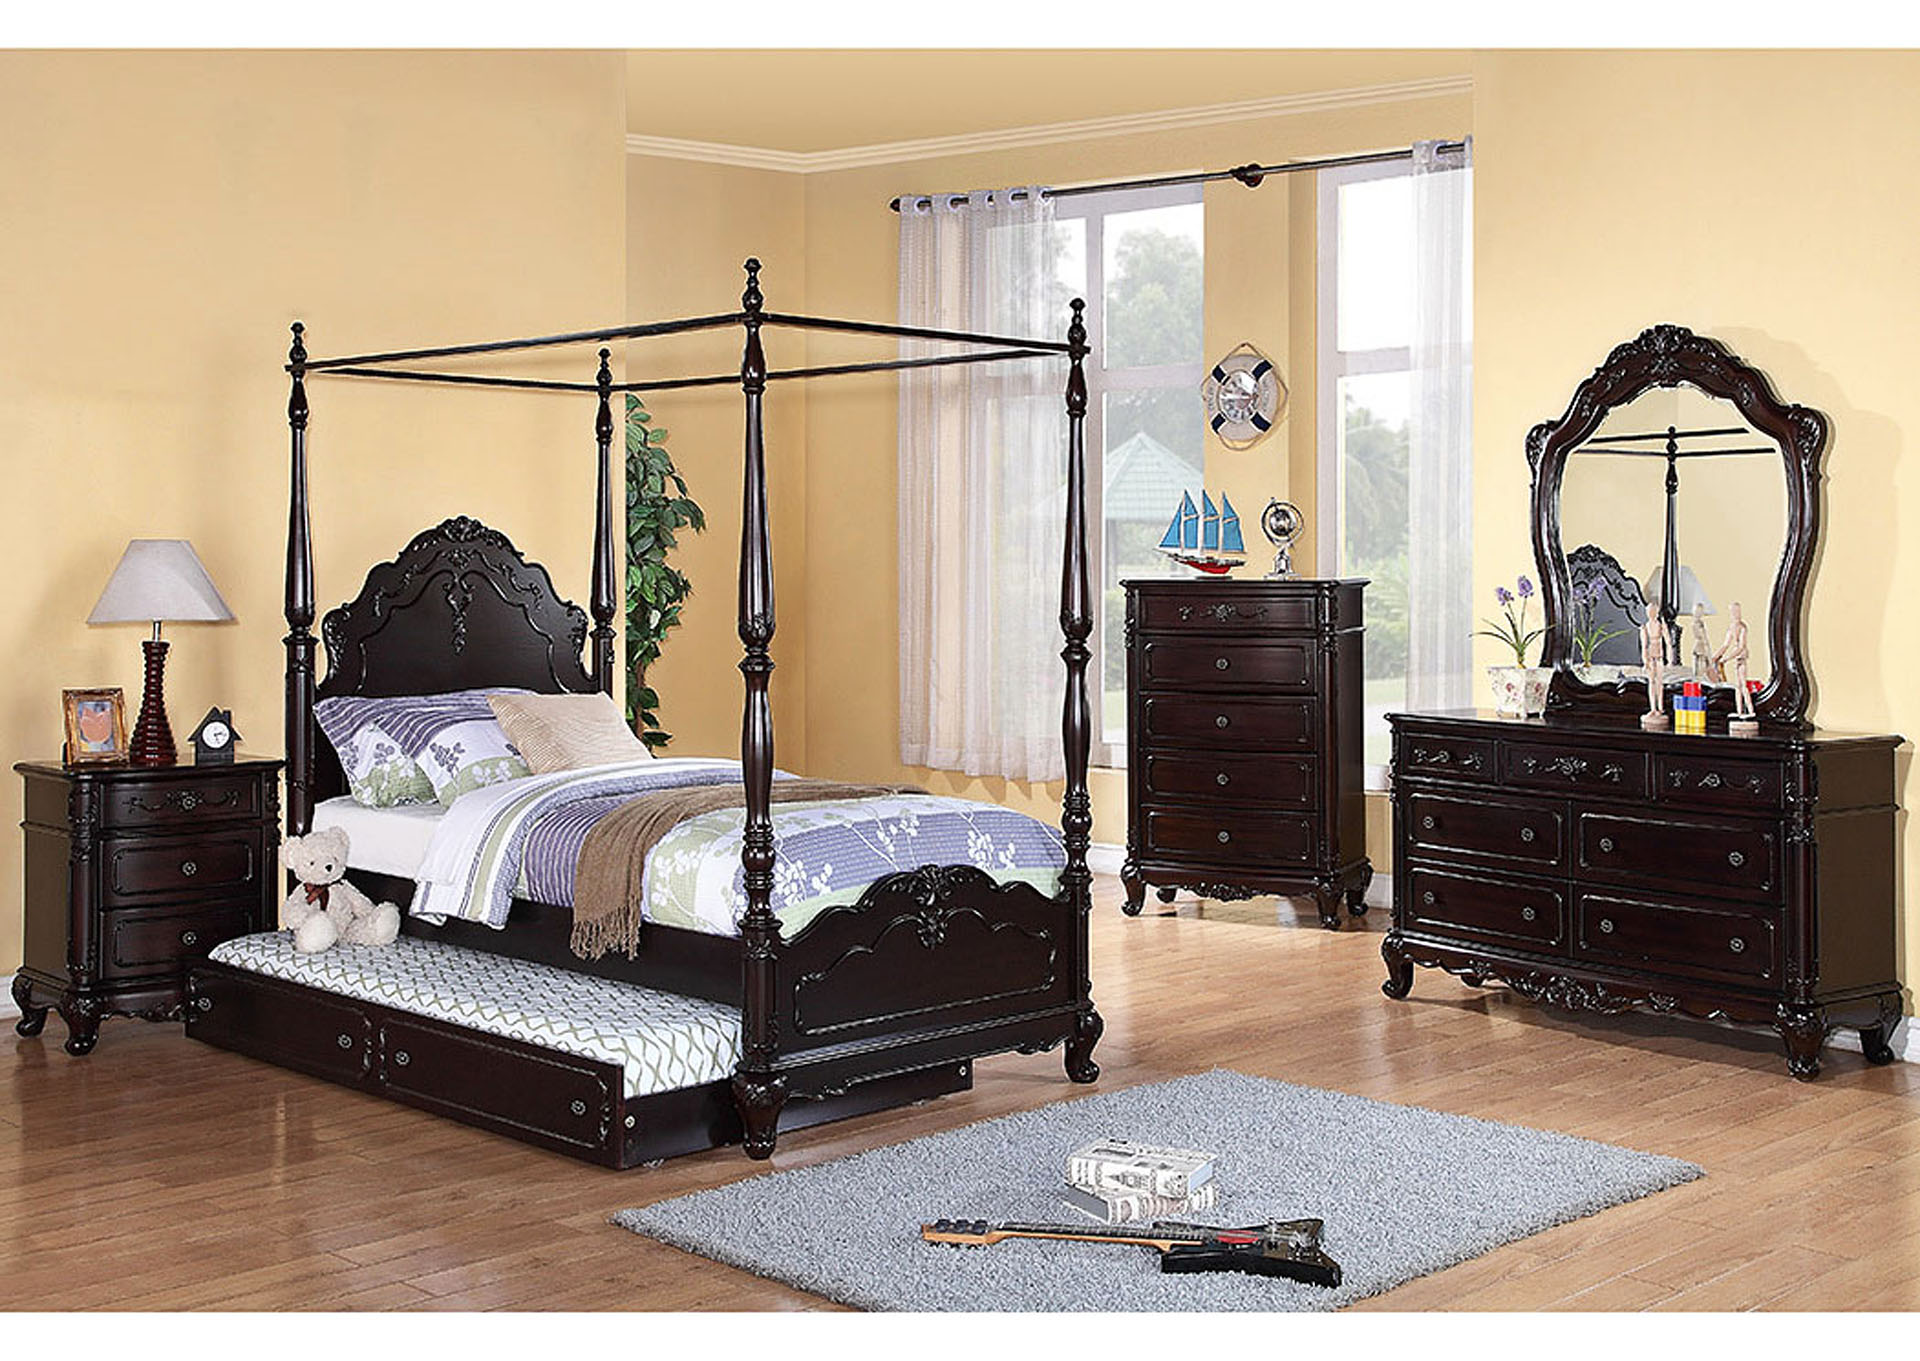 Cinderella Dark Cherry Full Canopy Poster Bed,Homelegance